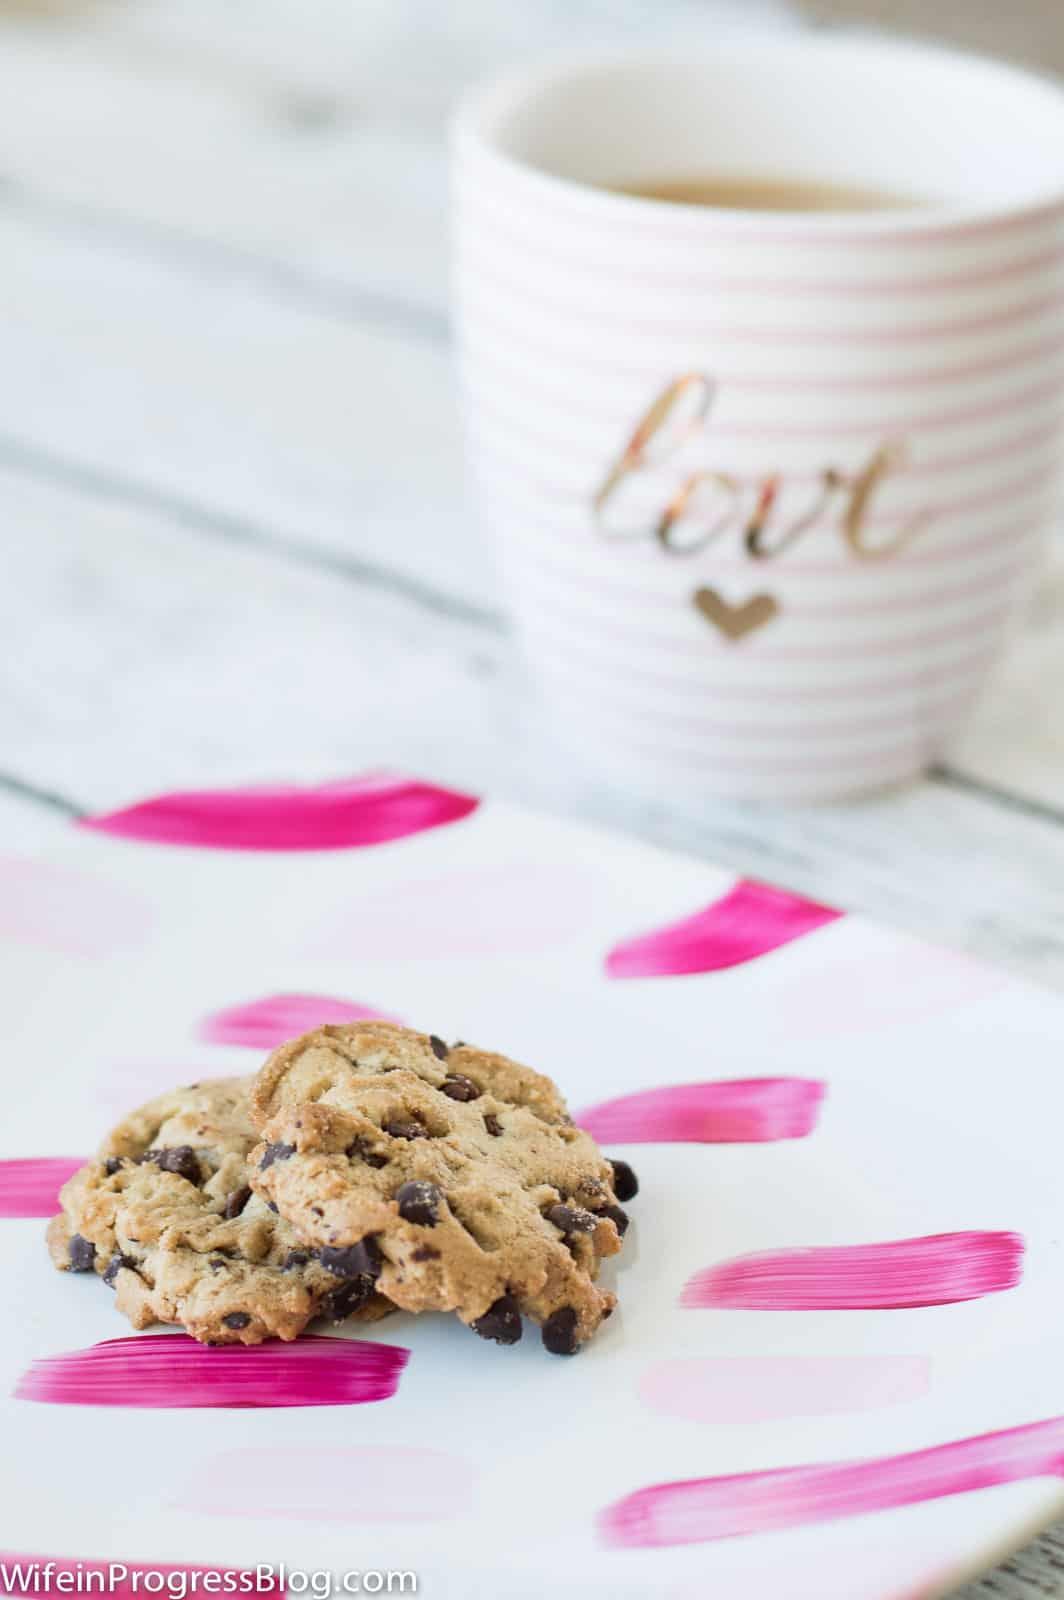 Use your painted Valentine's plates to serve cookies and coffee on Valentine's day